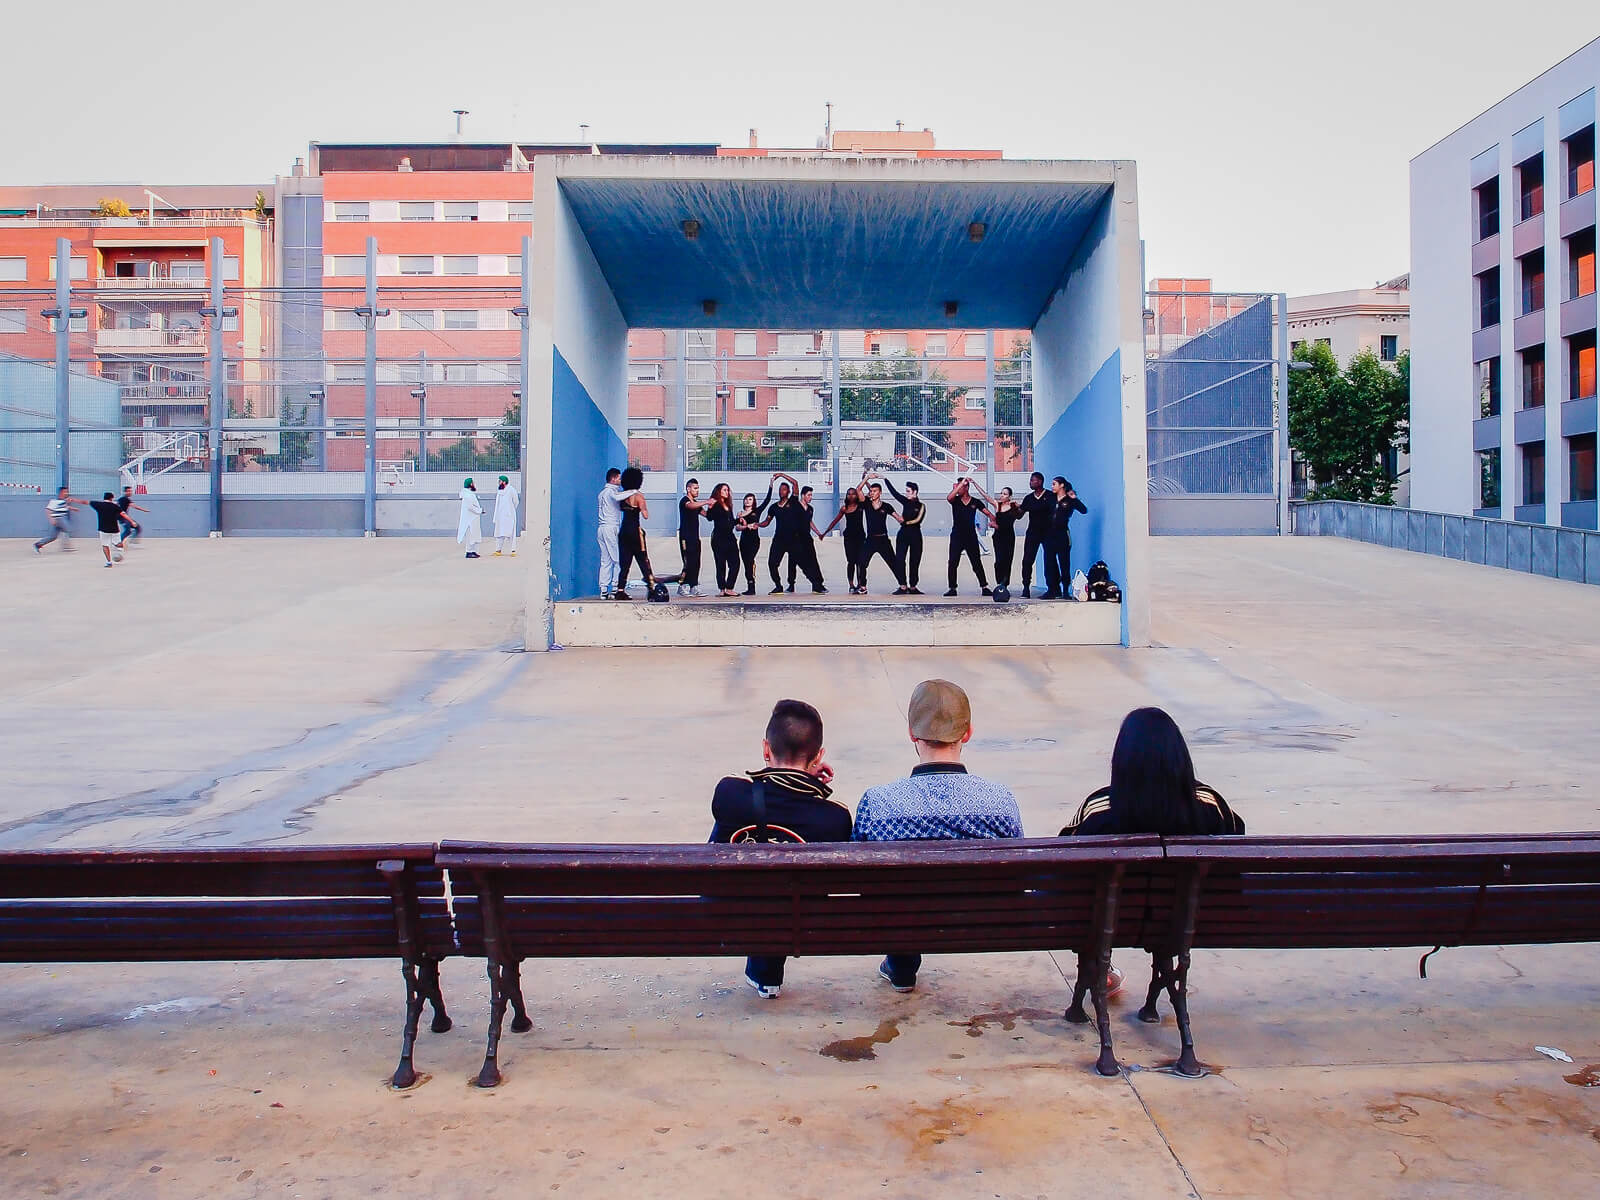 Barcelona Street Photography, parc Jardins Tres Xemeneies, public street theater performance spectators, square stage